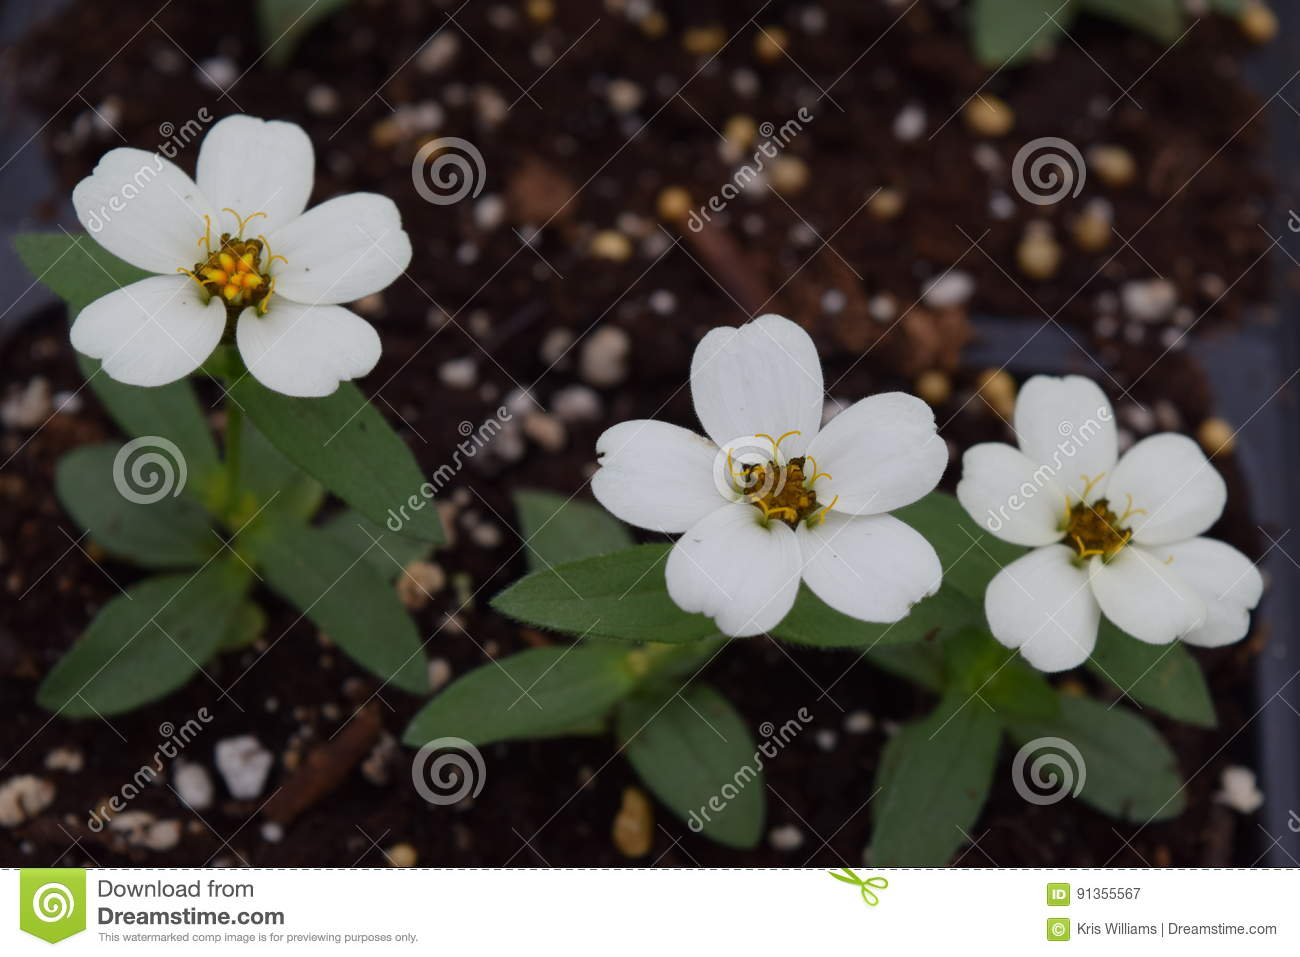 Three white detailed flowers in dirt